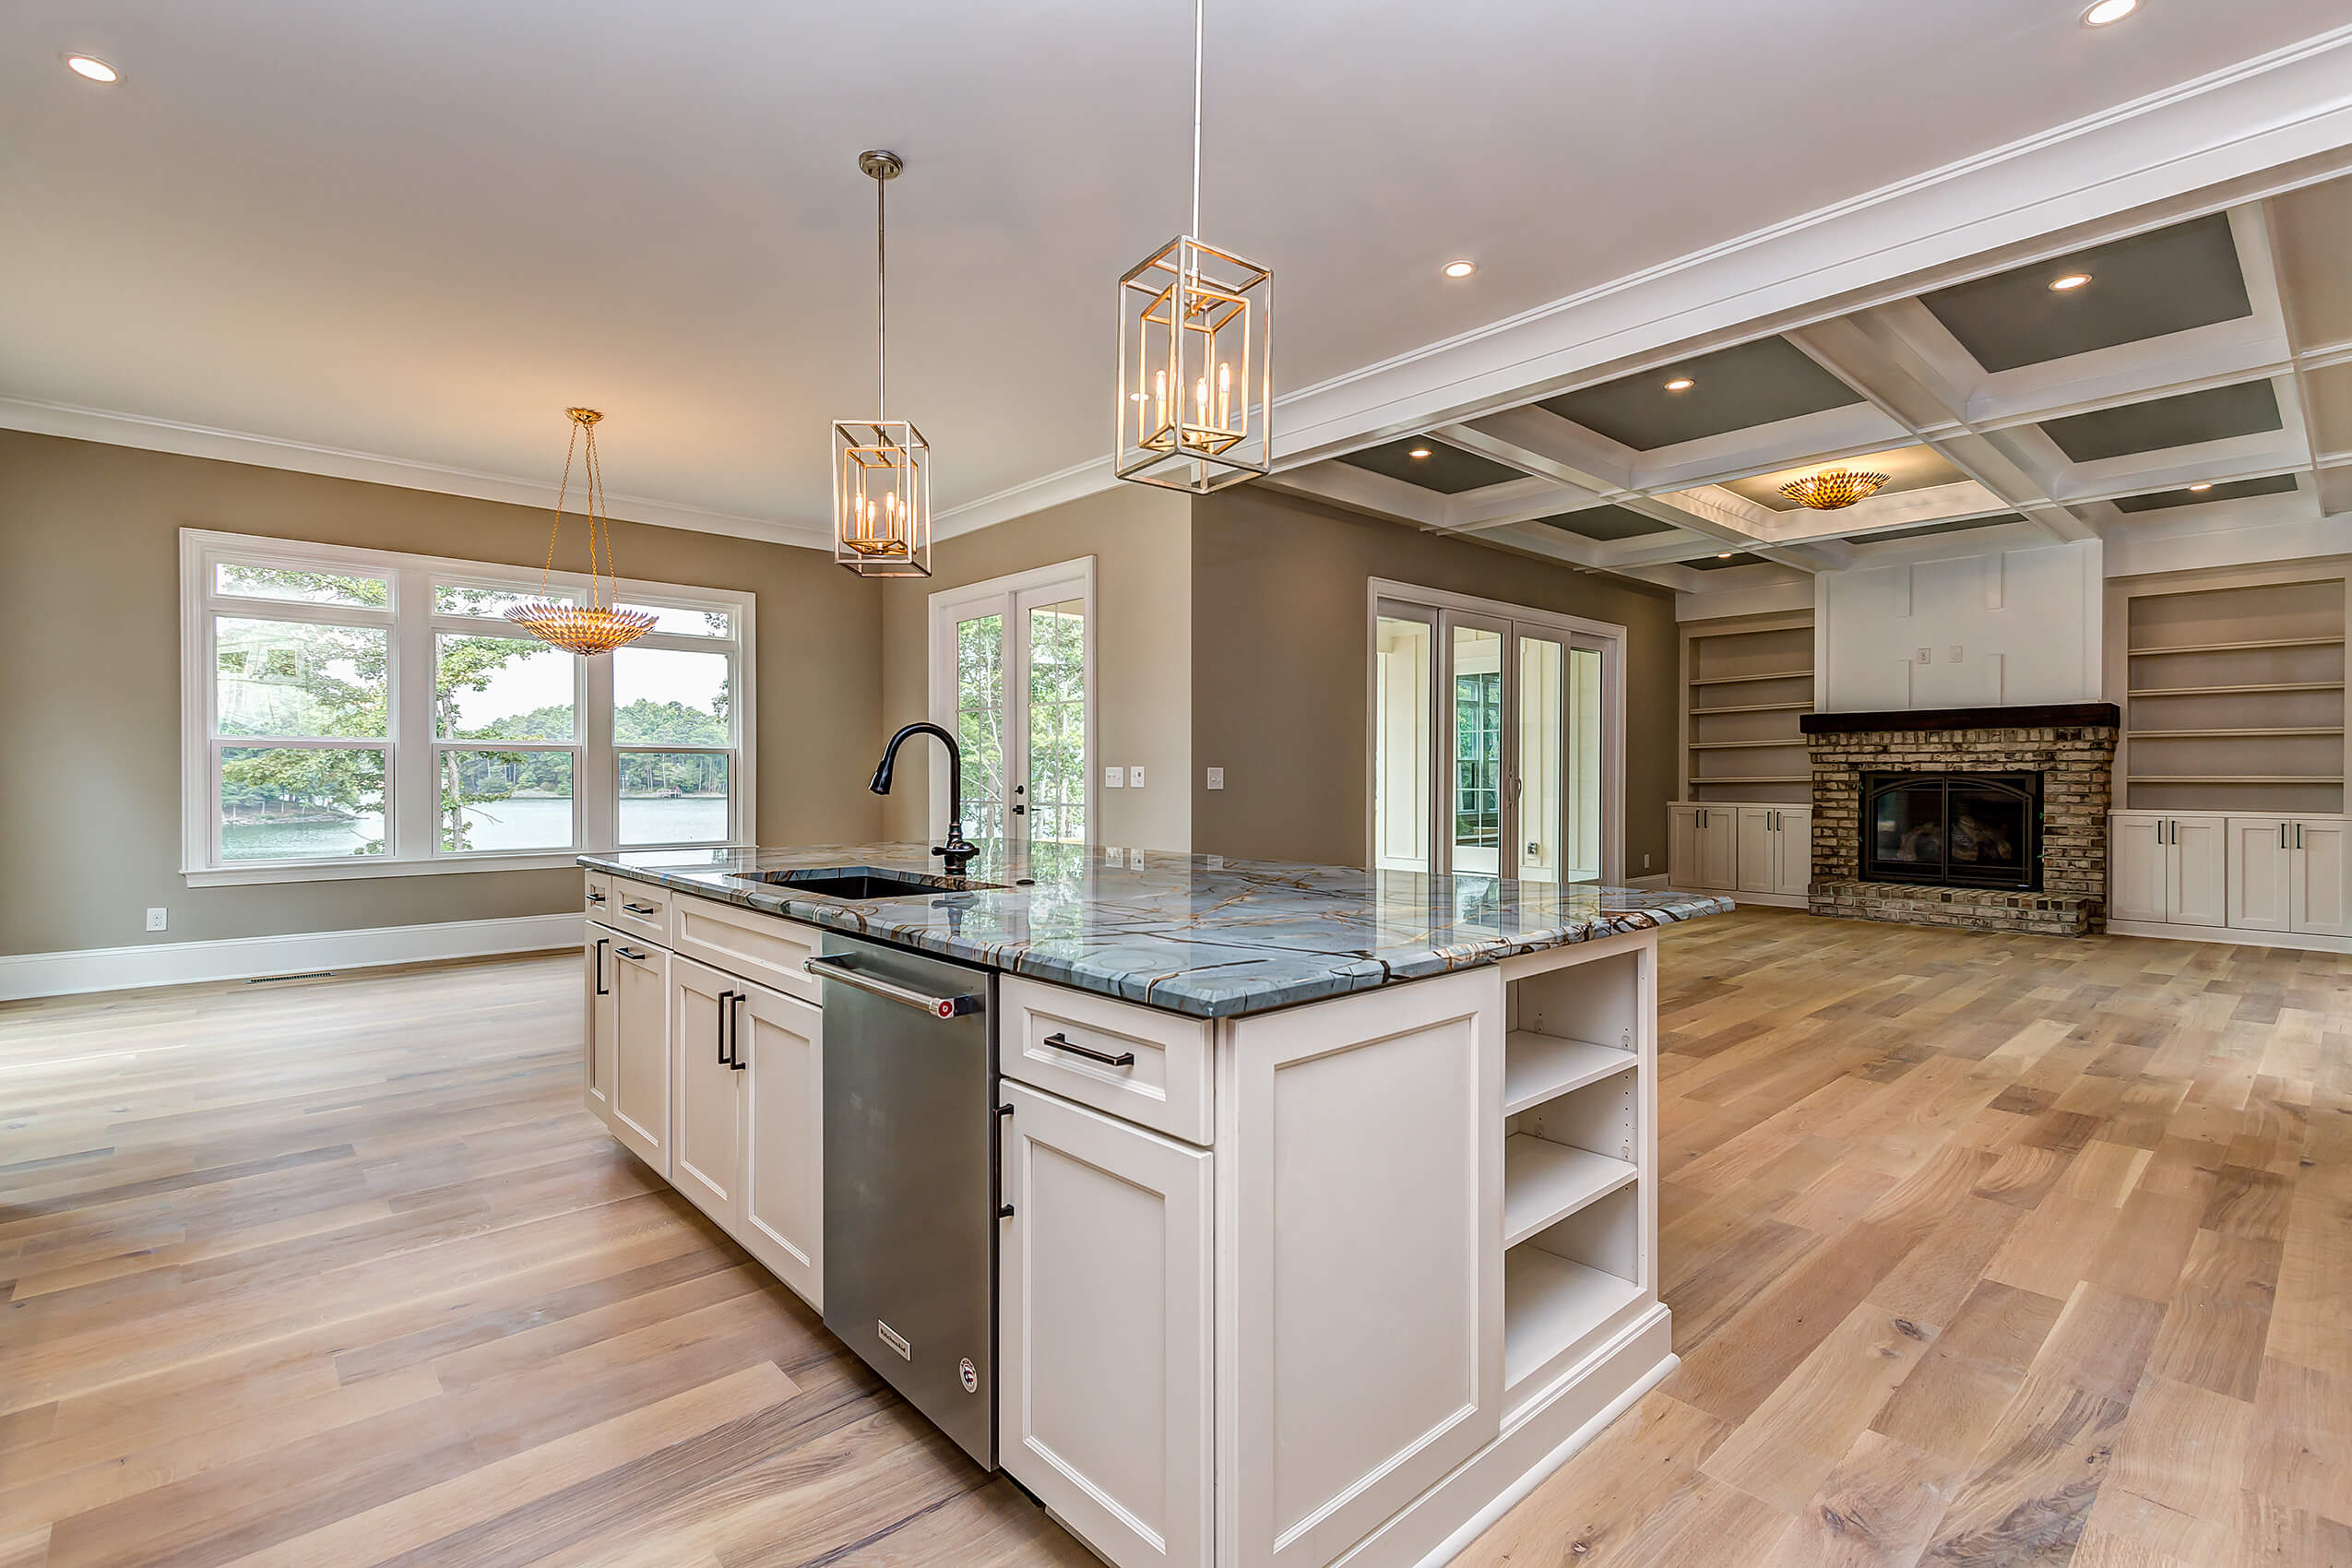 Kitchen island contrasts with beautiful white oak flooring.